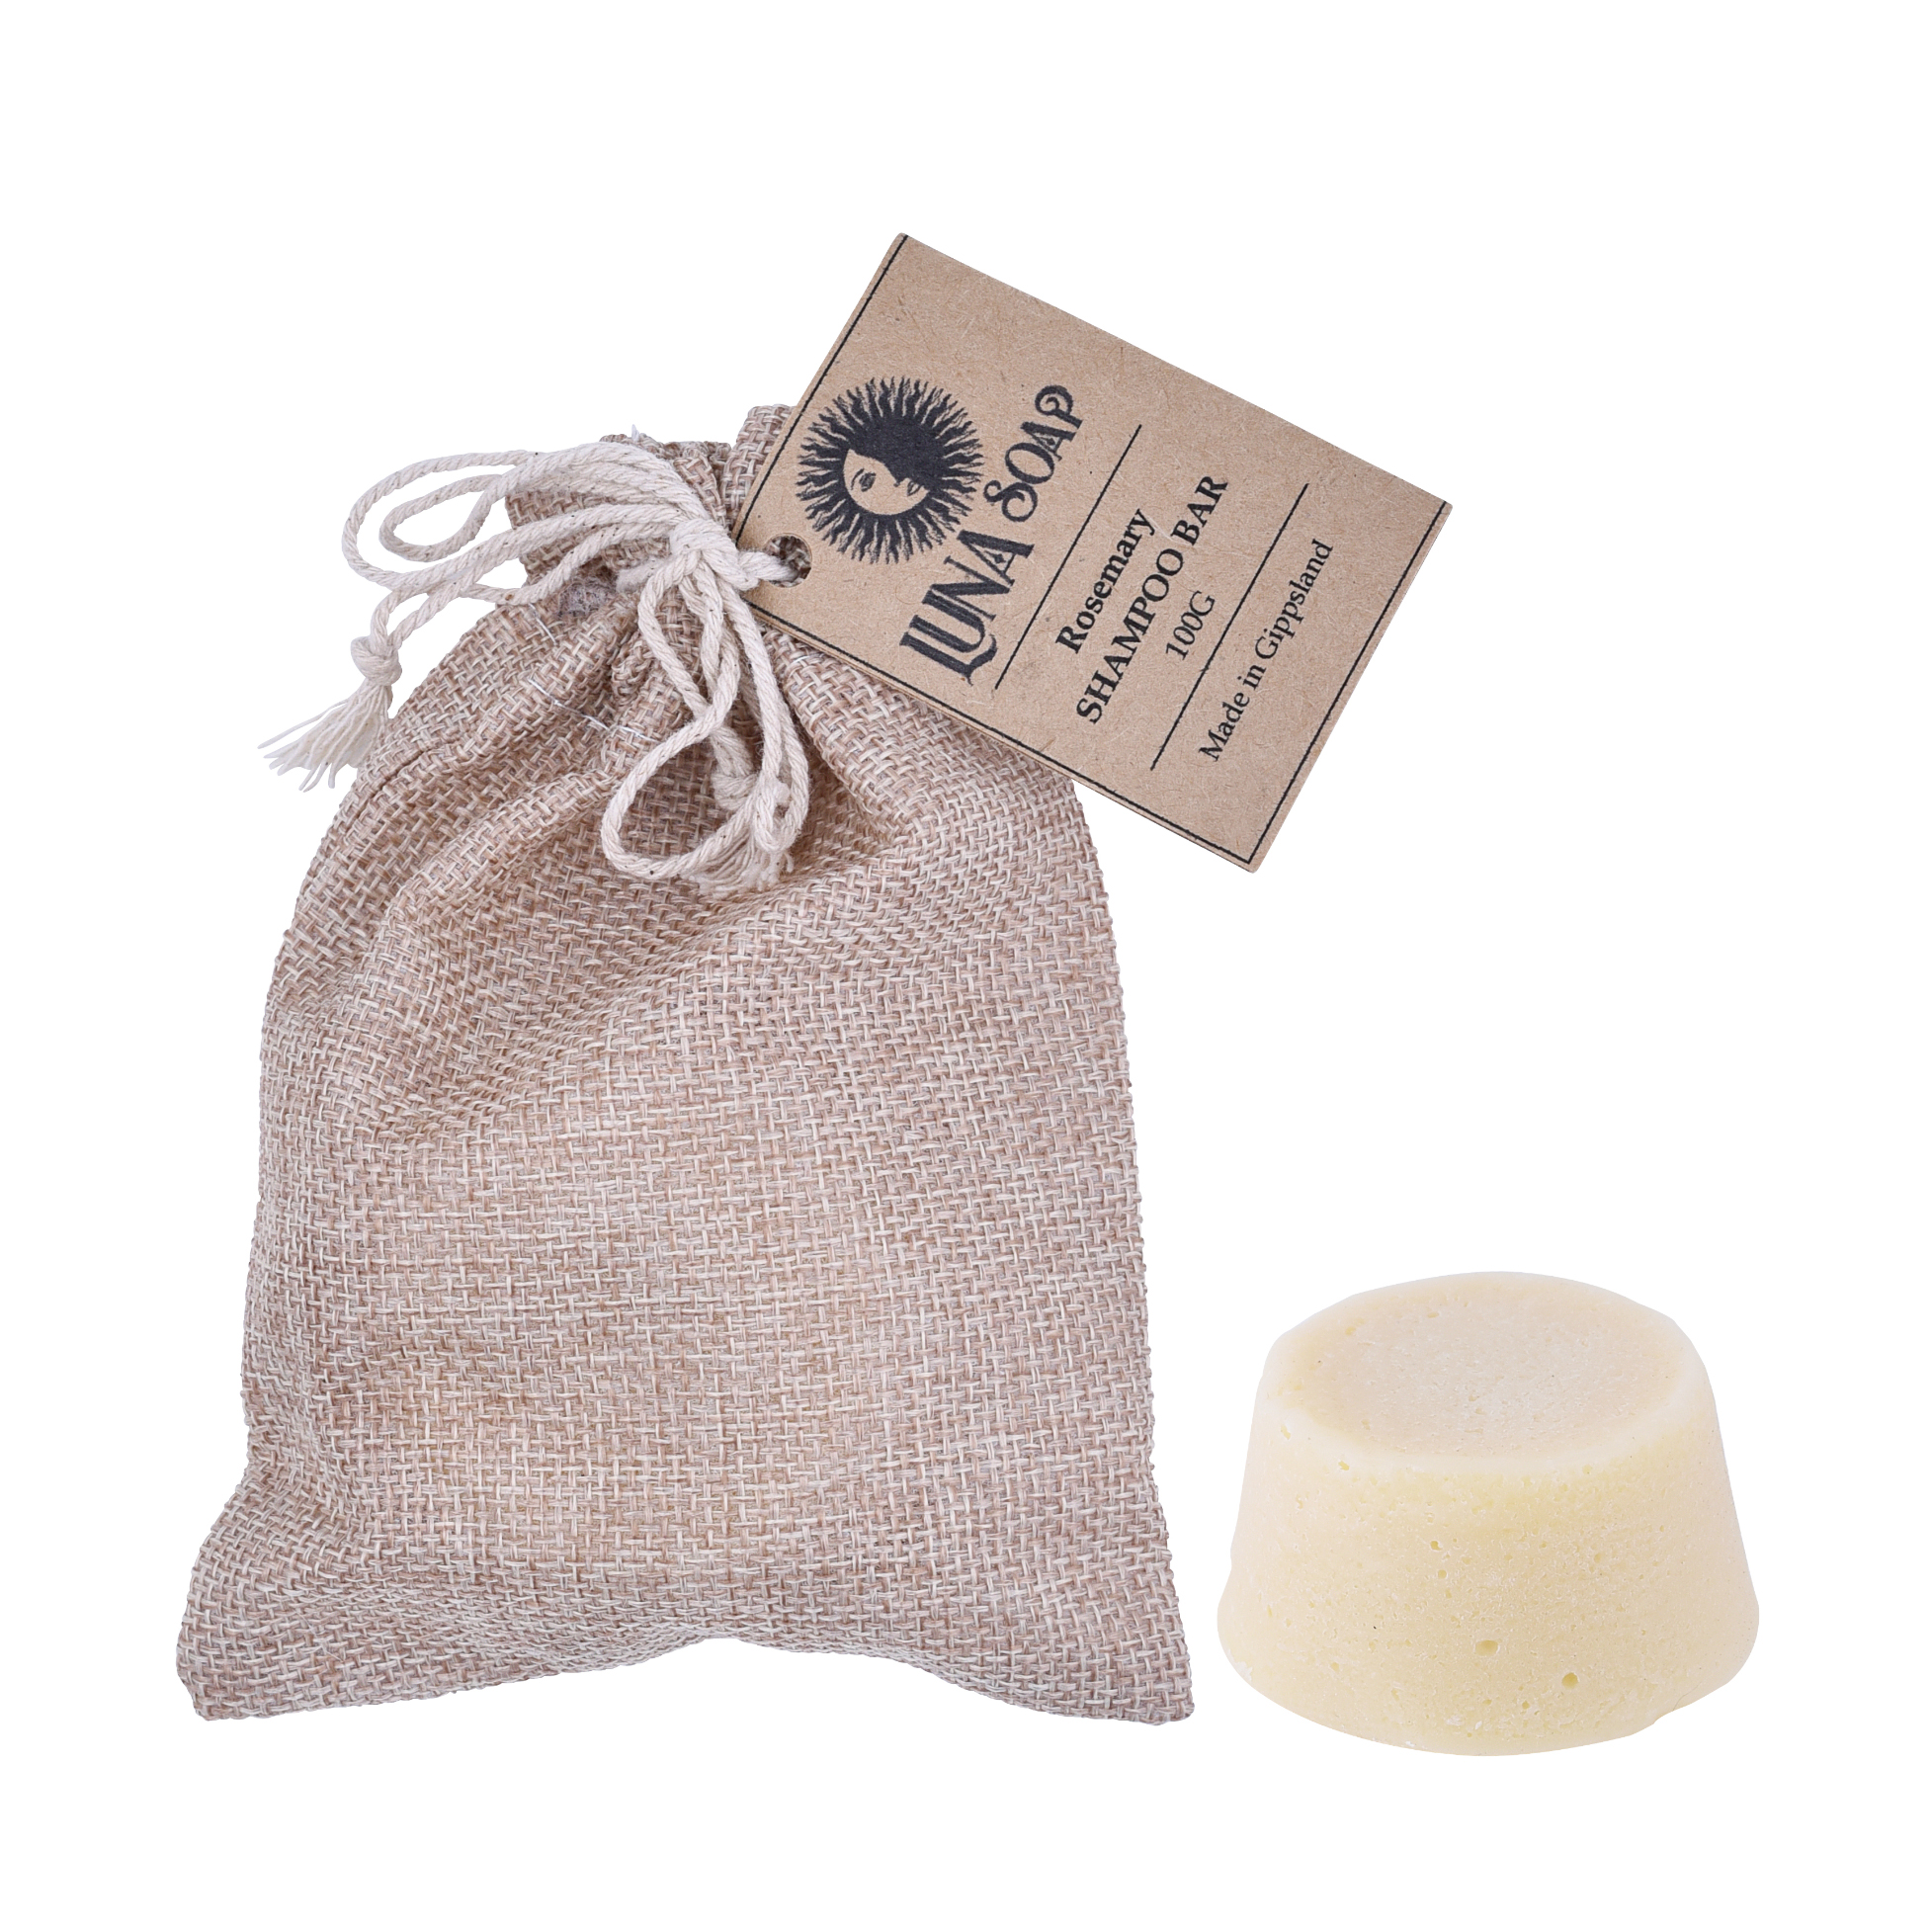 Shampoo Bar - Blue and Sunny Sustainable Online Store